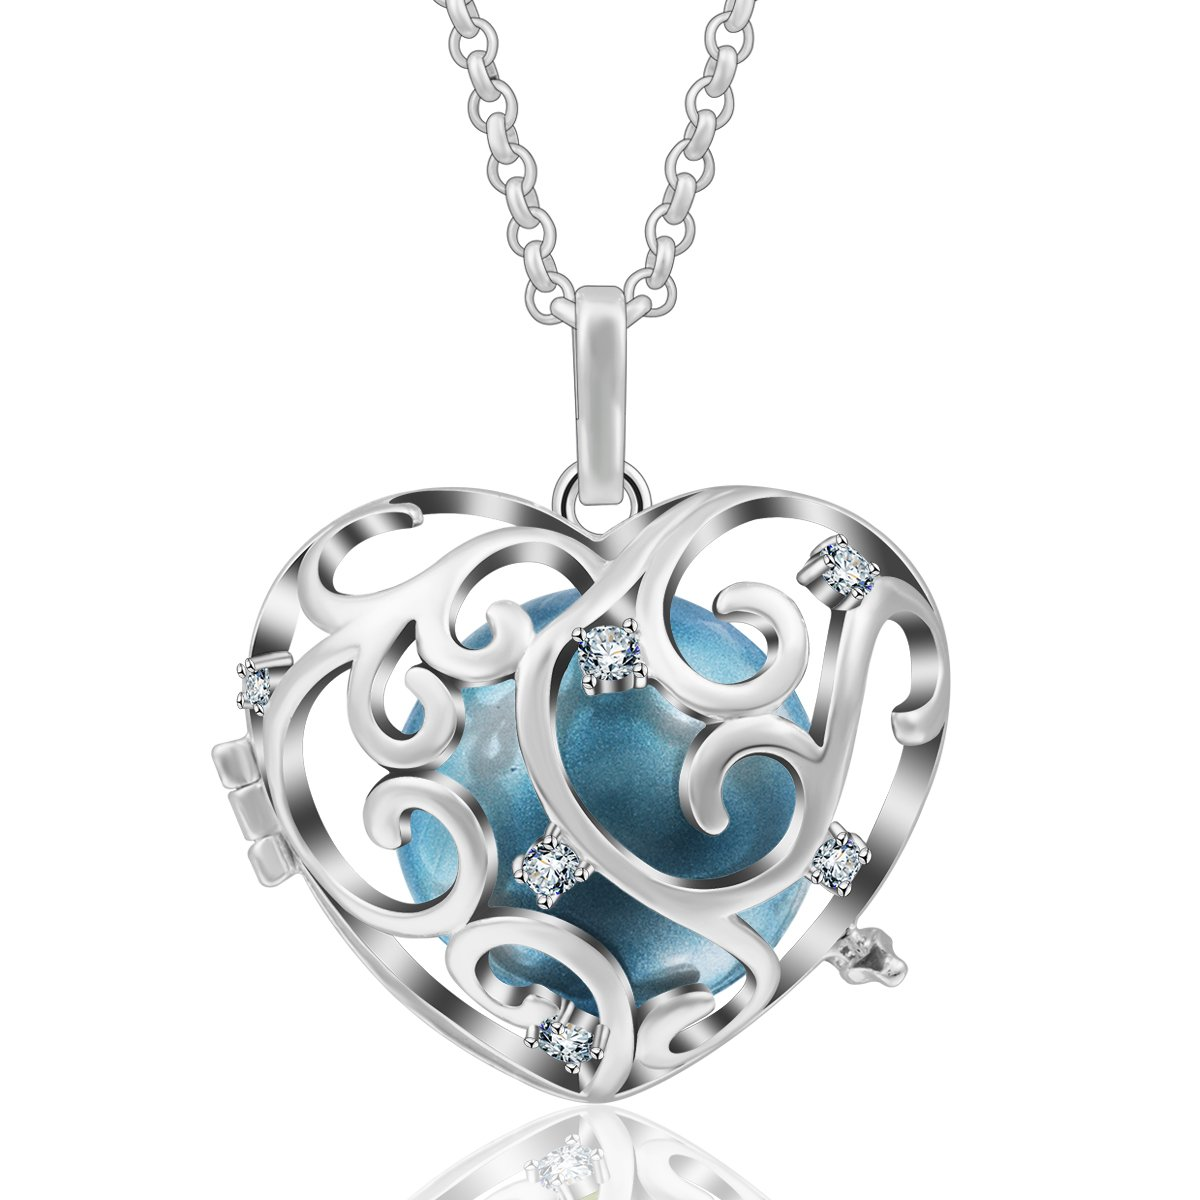 EUDORA Harmony Ball Necklace flower-de-luce Music Chime Gift to Mom Wishing Ball, 30'' Chain #25Blue